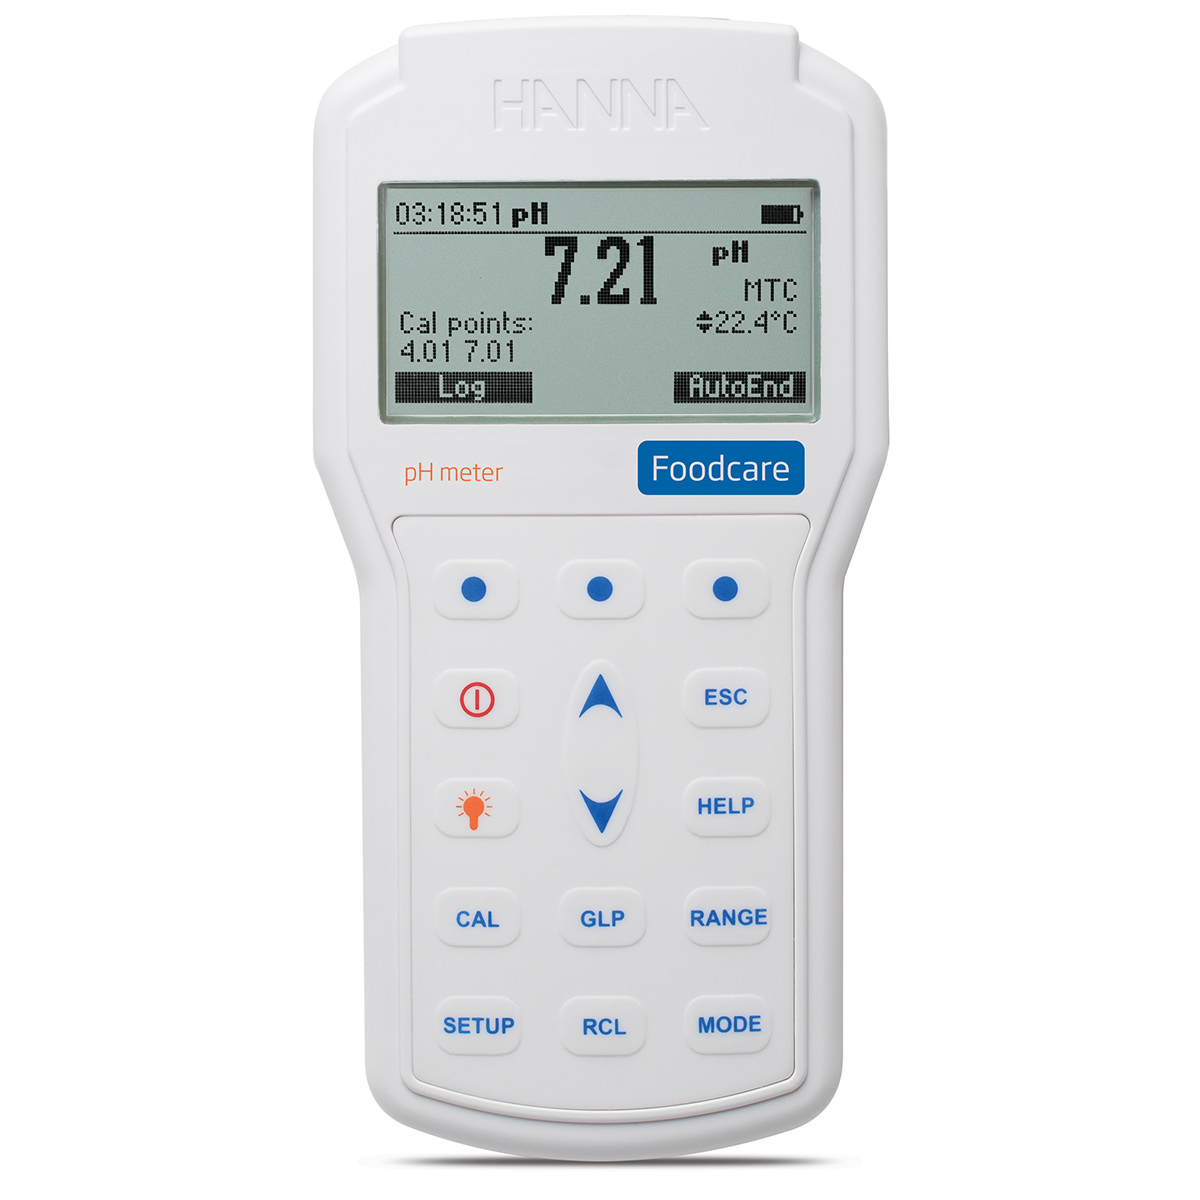 Professional Foodcare Portable pH Meter - HI98161